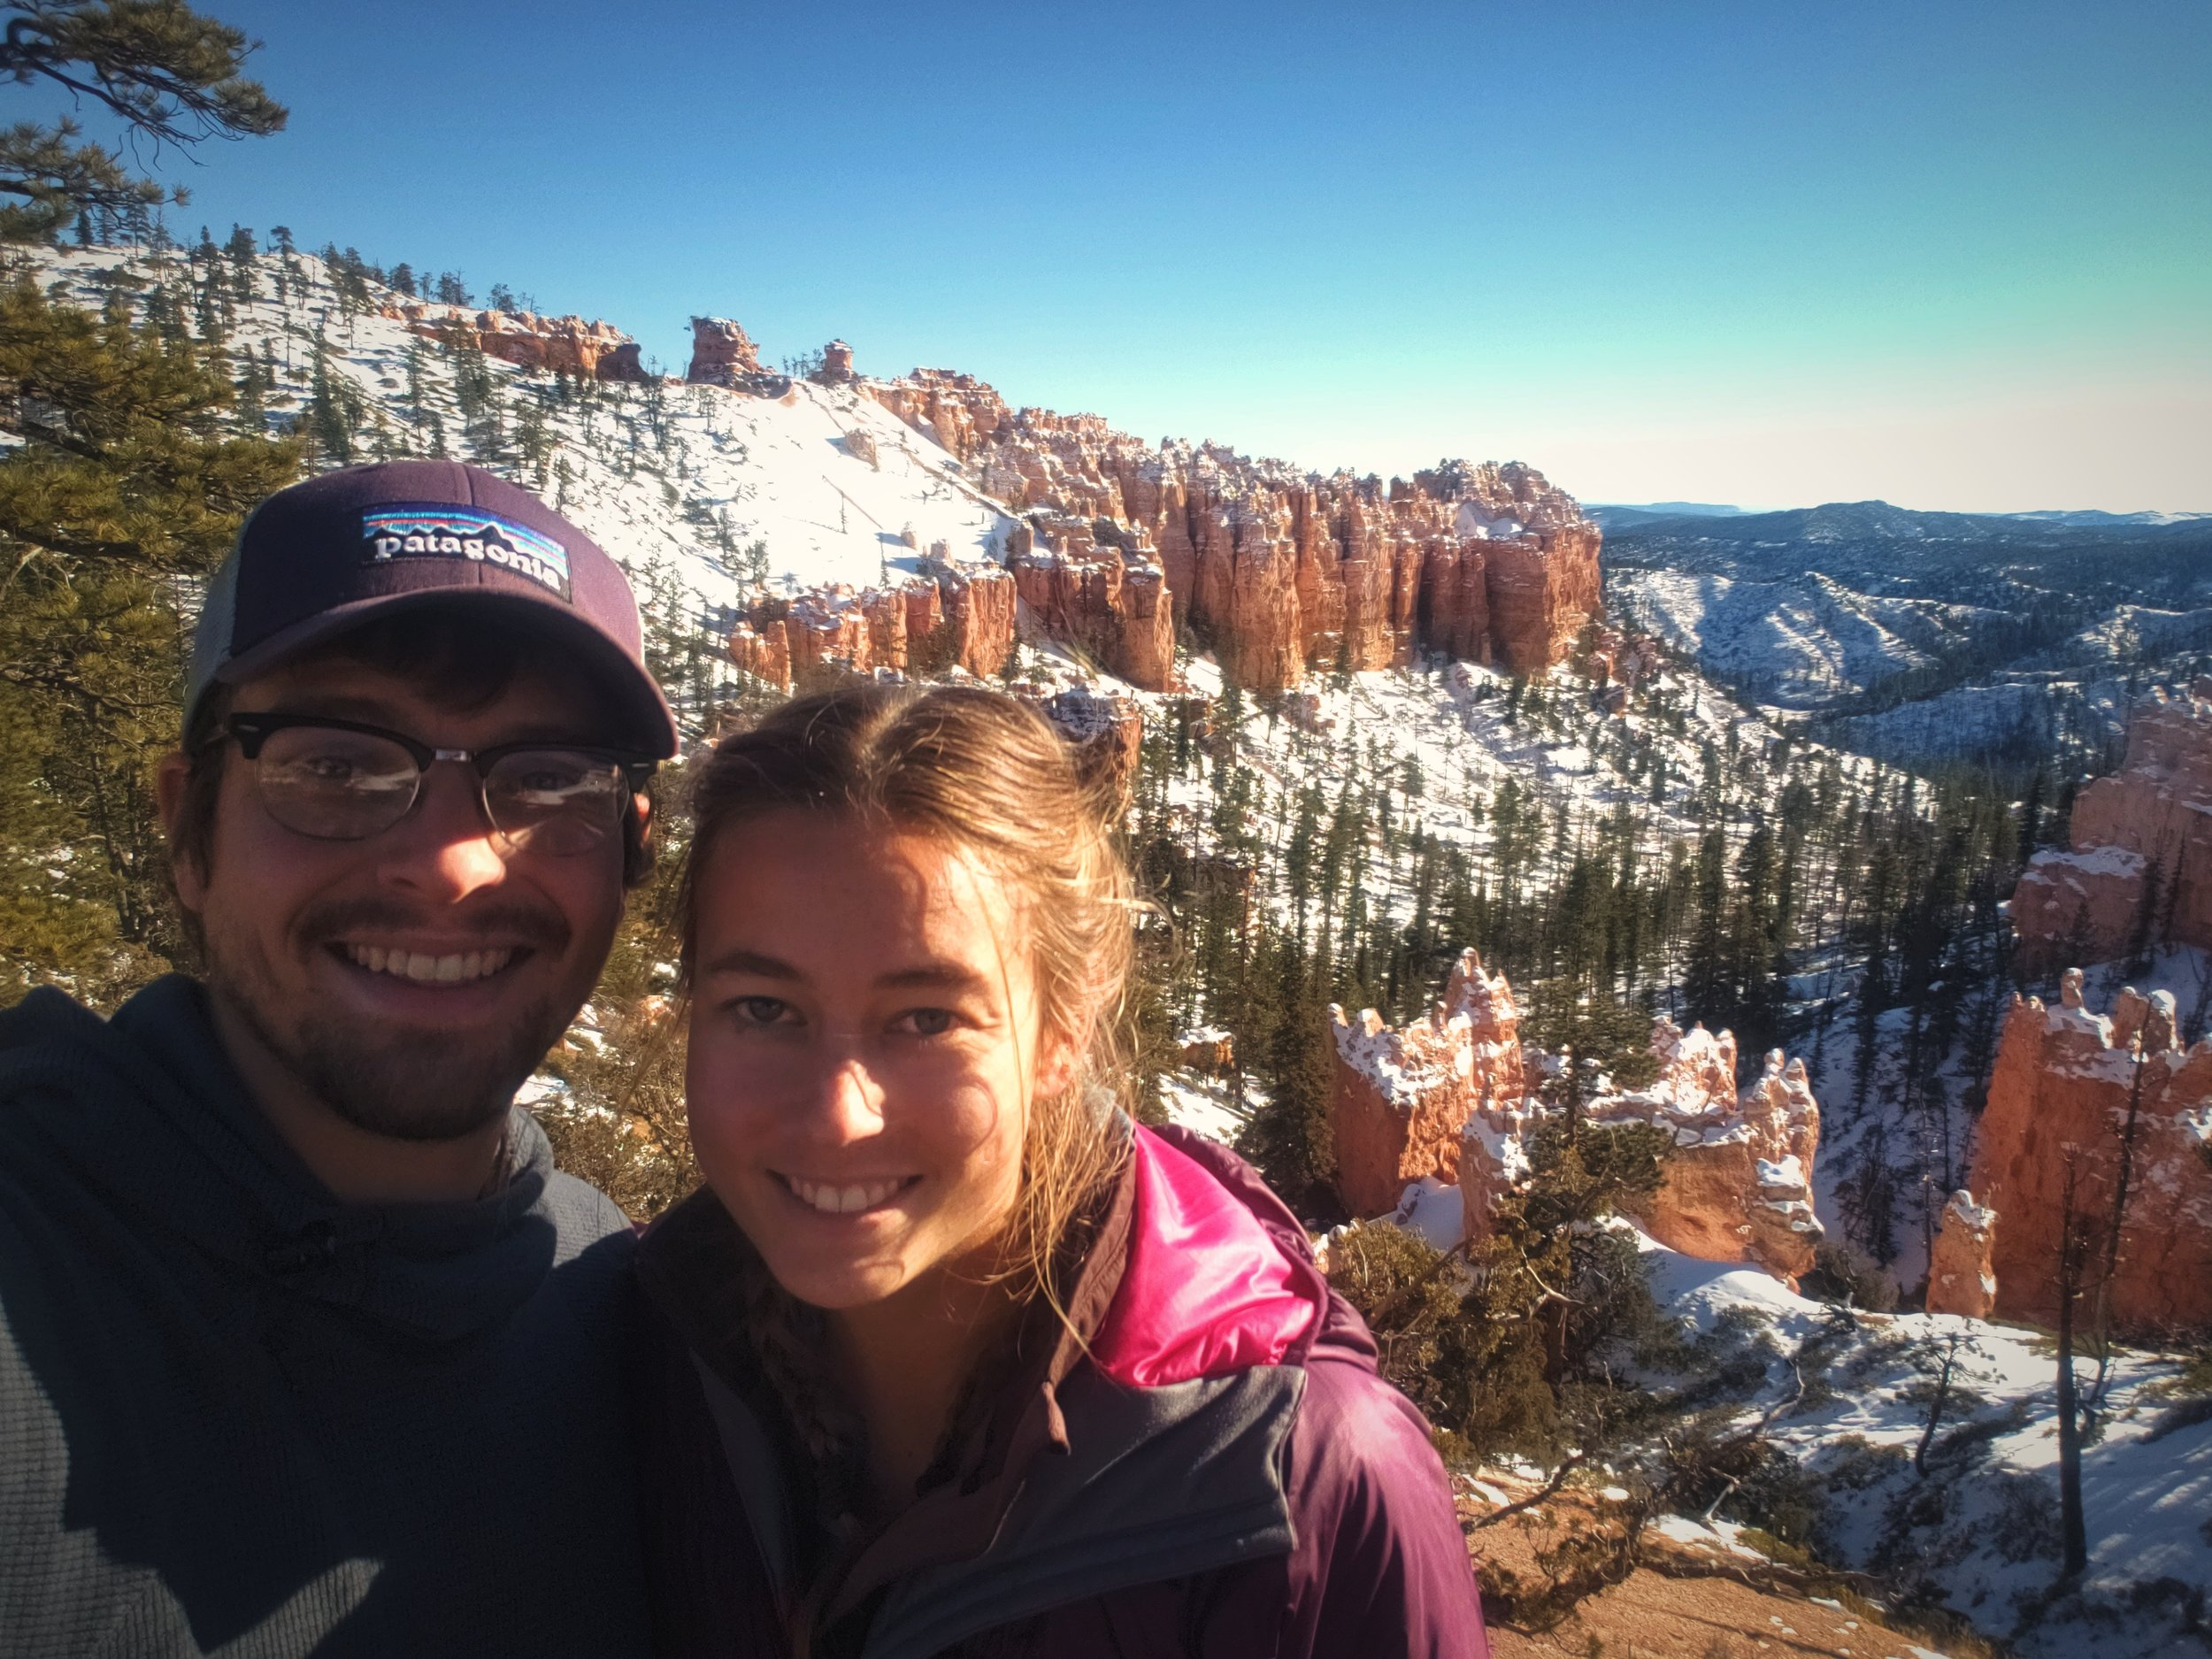 Driving the Bryce Canyon Road is a nice way to spend a chilly afternoon.